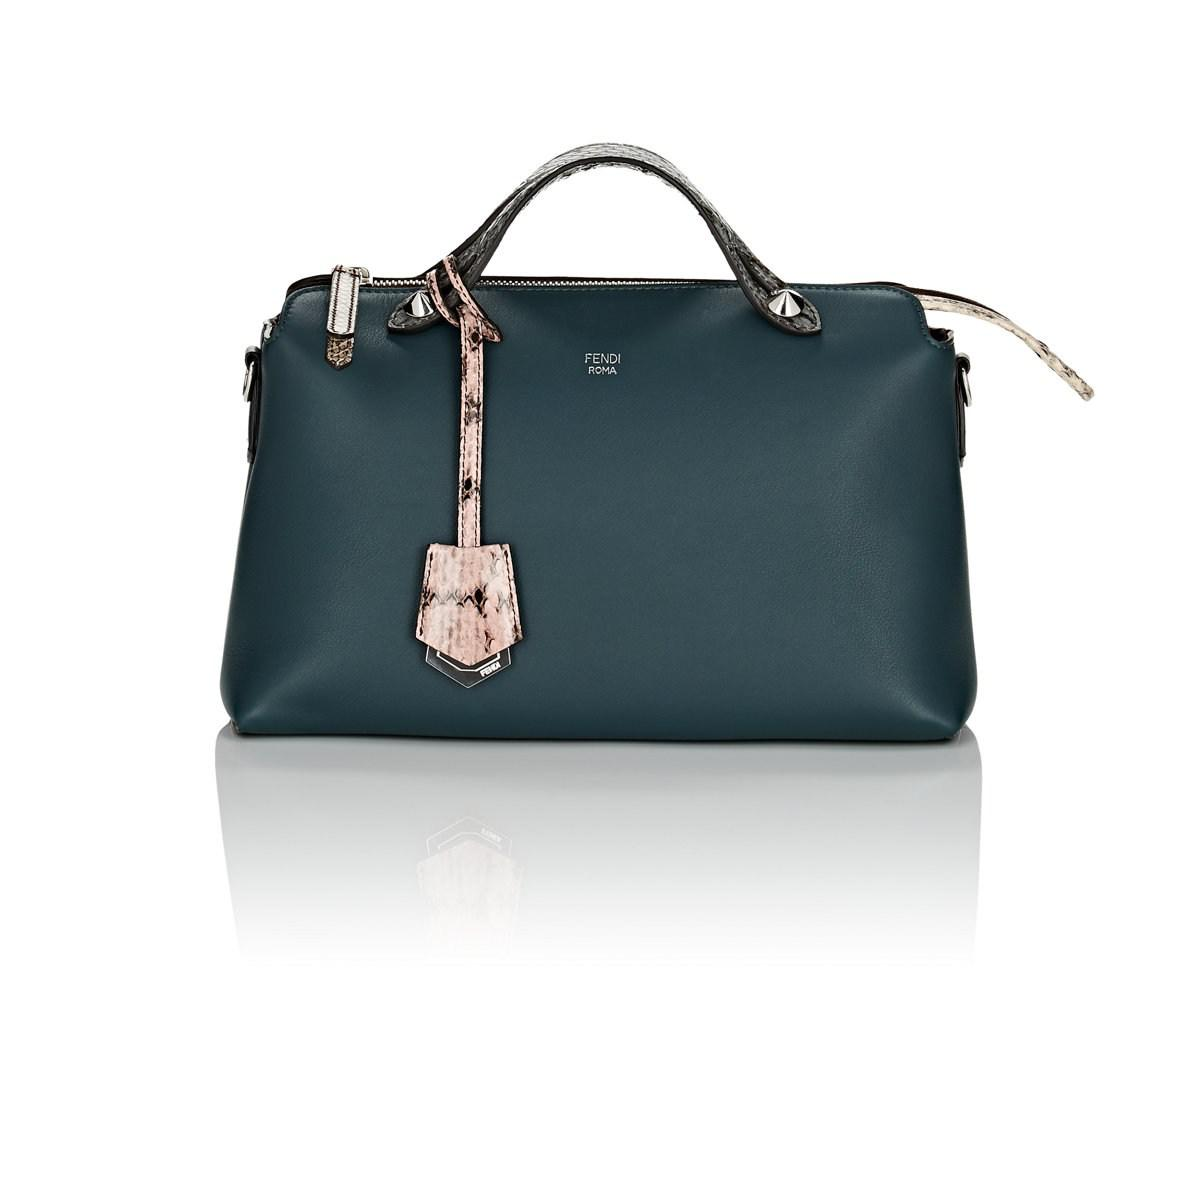 59849c2e0 ... coupon code for fendi by the way small leather shoulder bag in green  lyst f4325 88674 ...